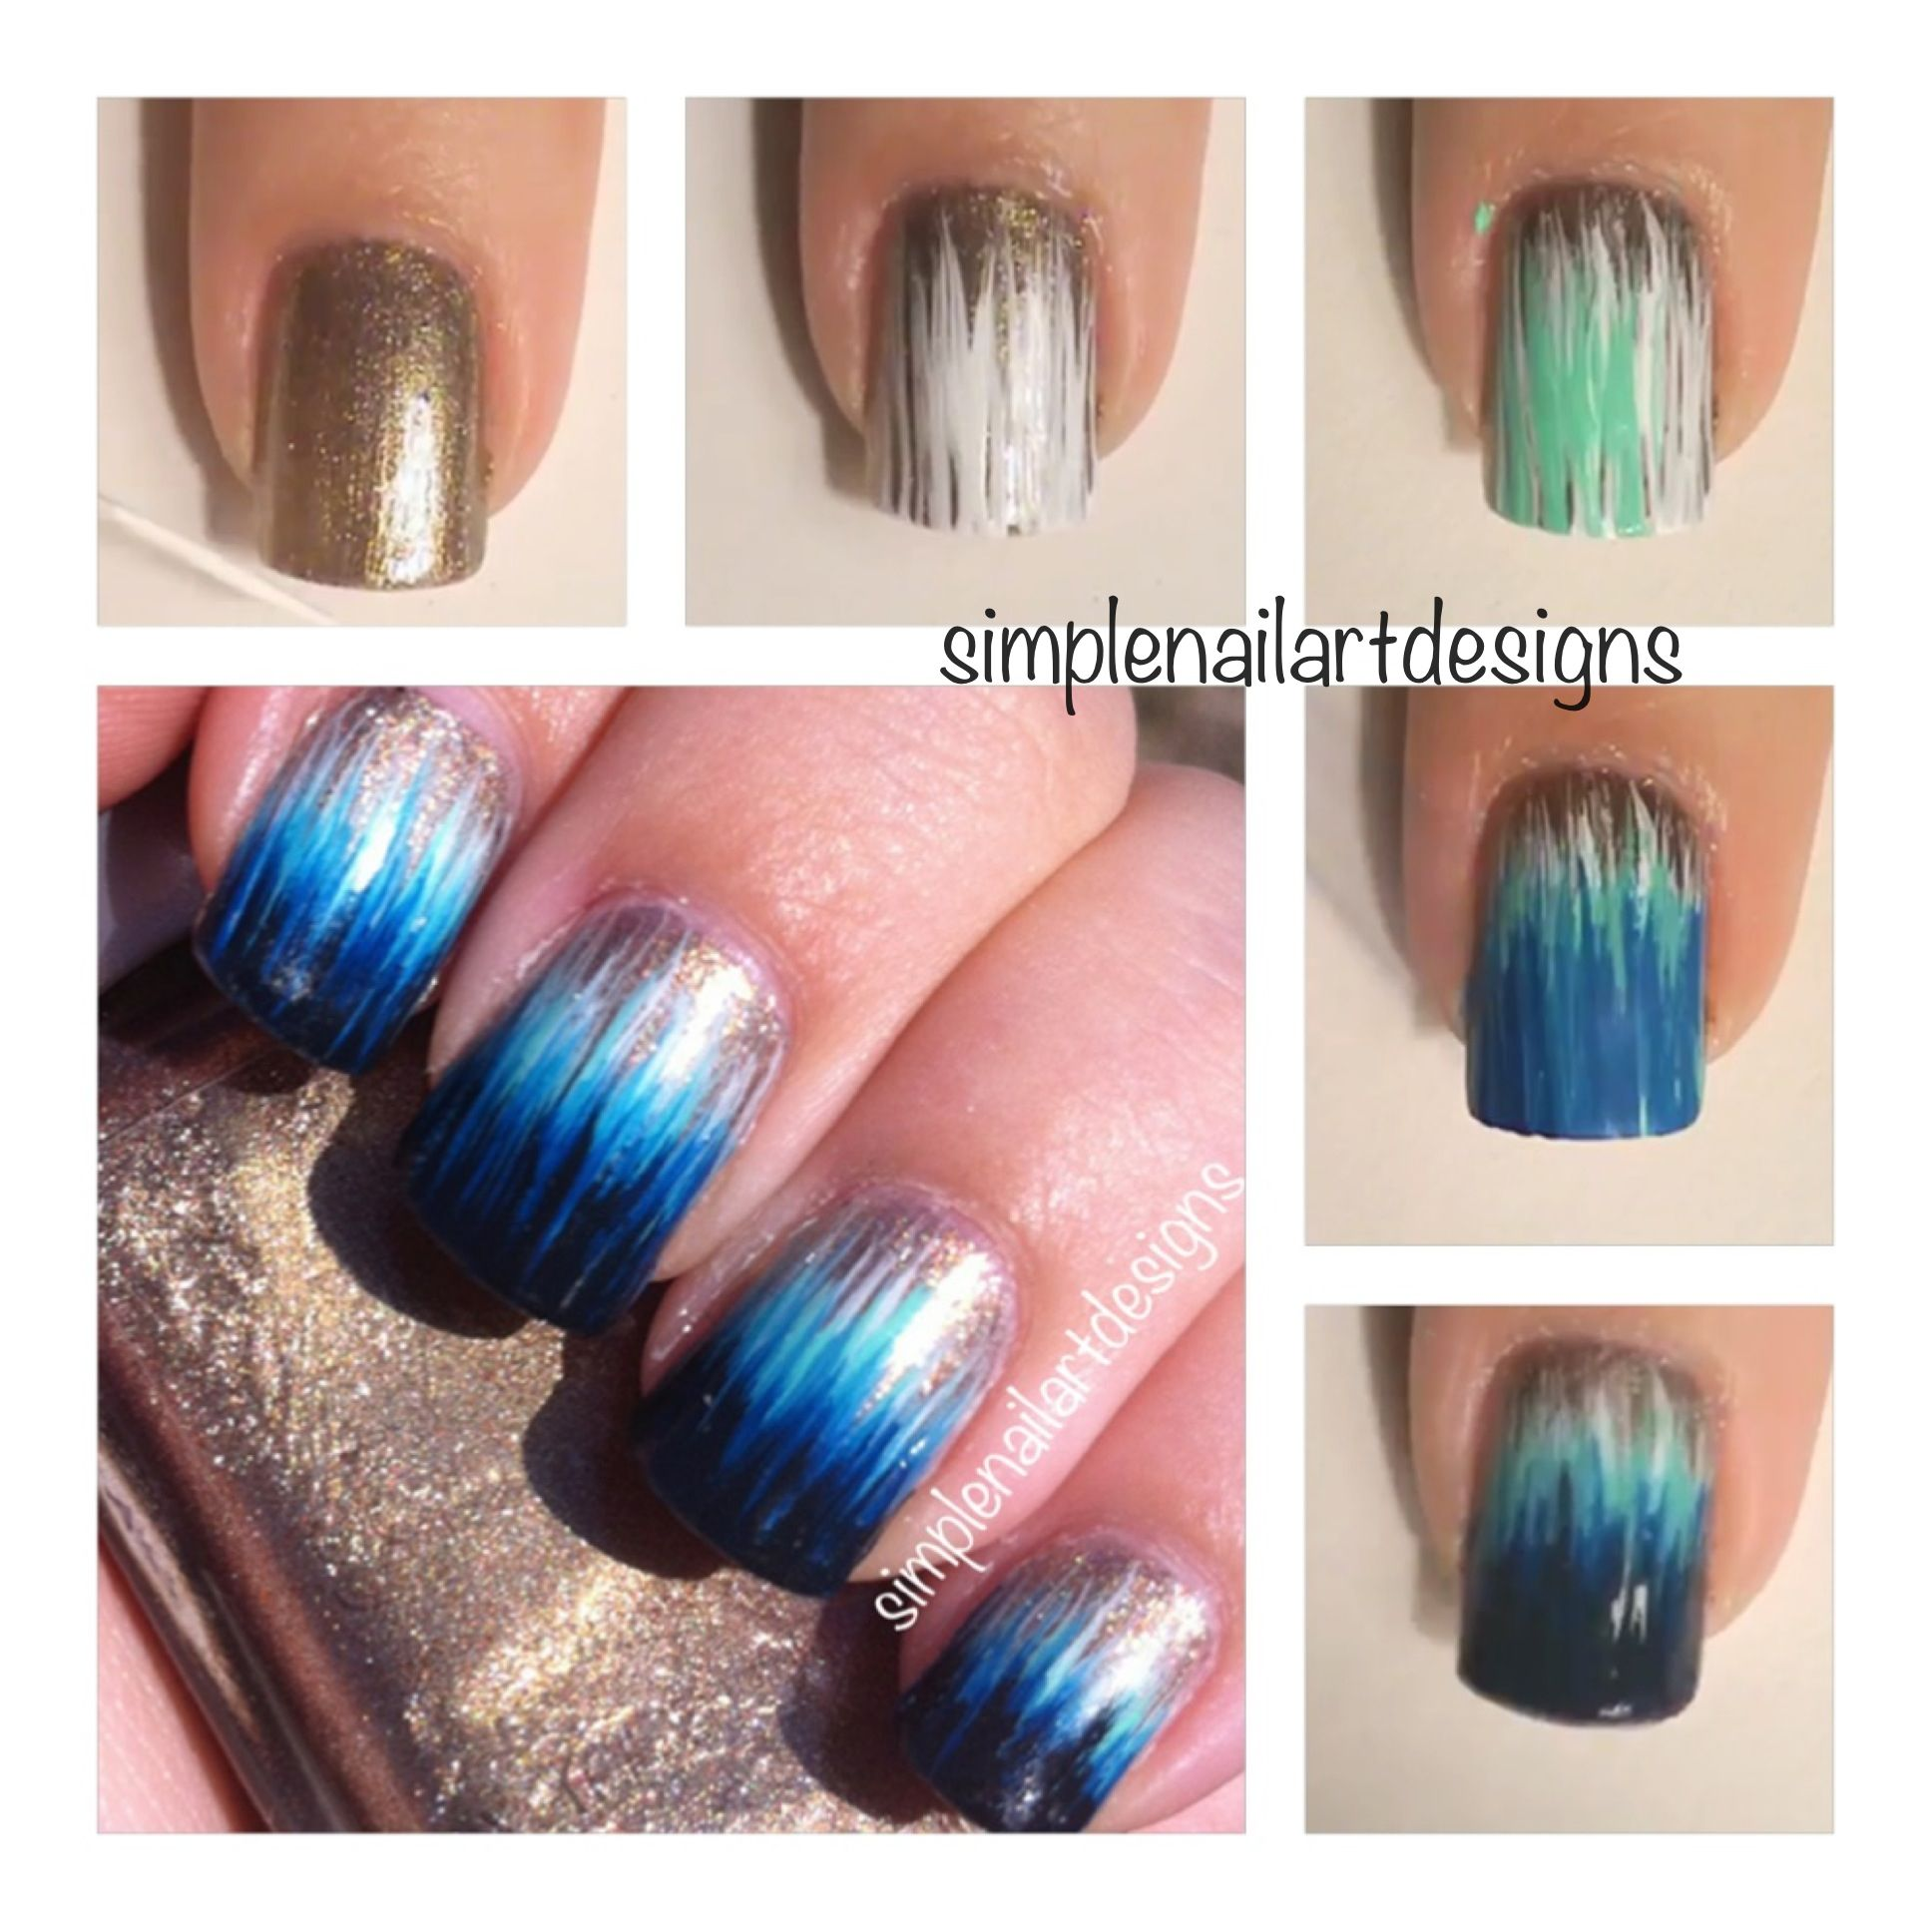 Ombre dip dye nails tutorial nails tutorial ombre dipdye beauty nails prinsesfo Image collections